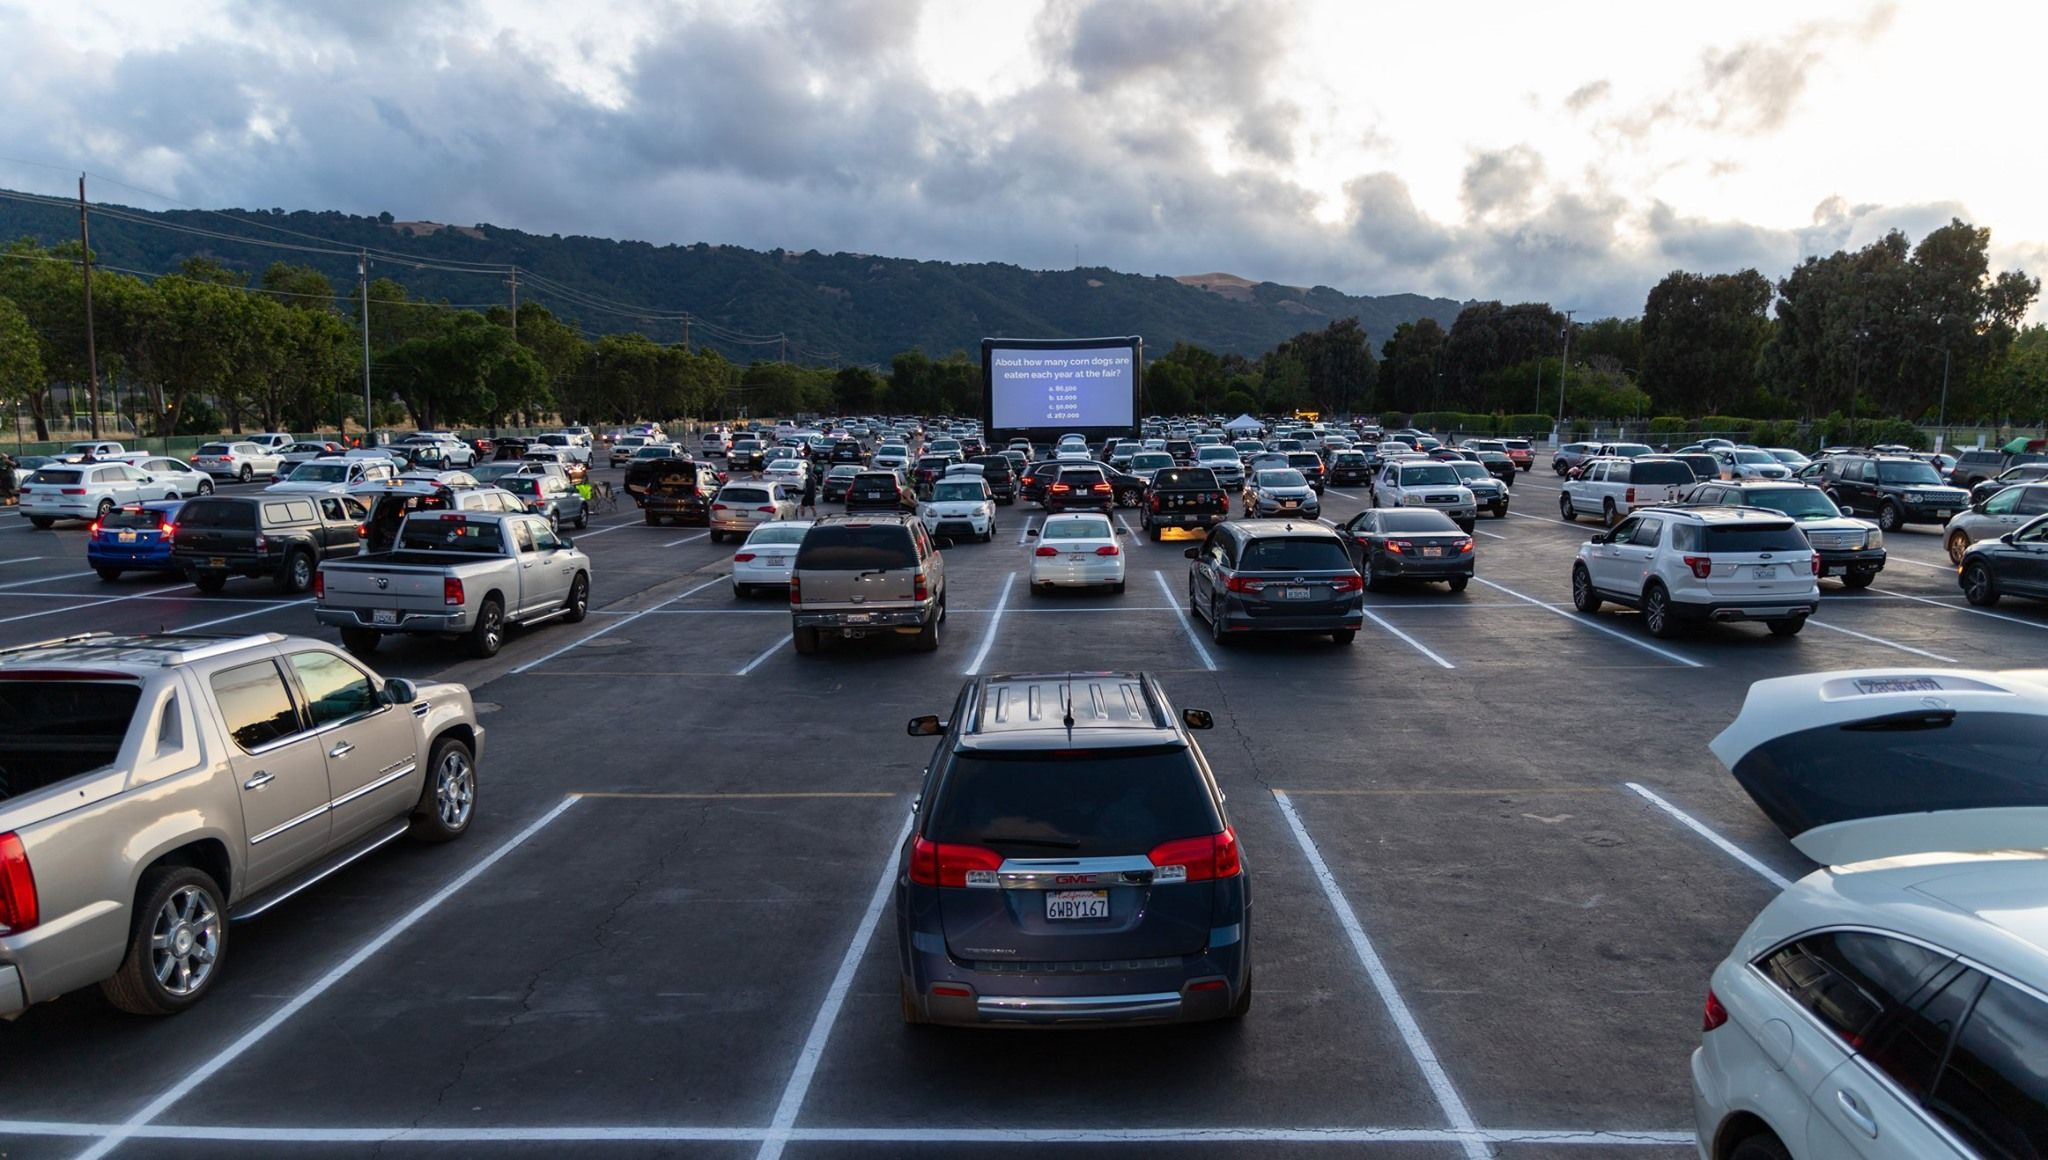 San Diego projector screen rental services by FunFlicks drive in movies